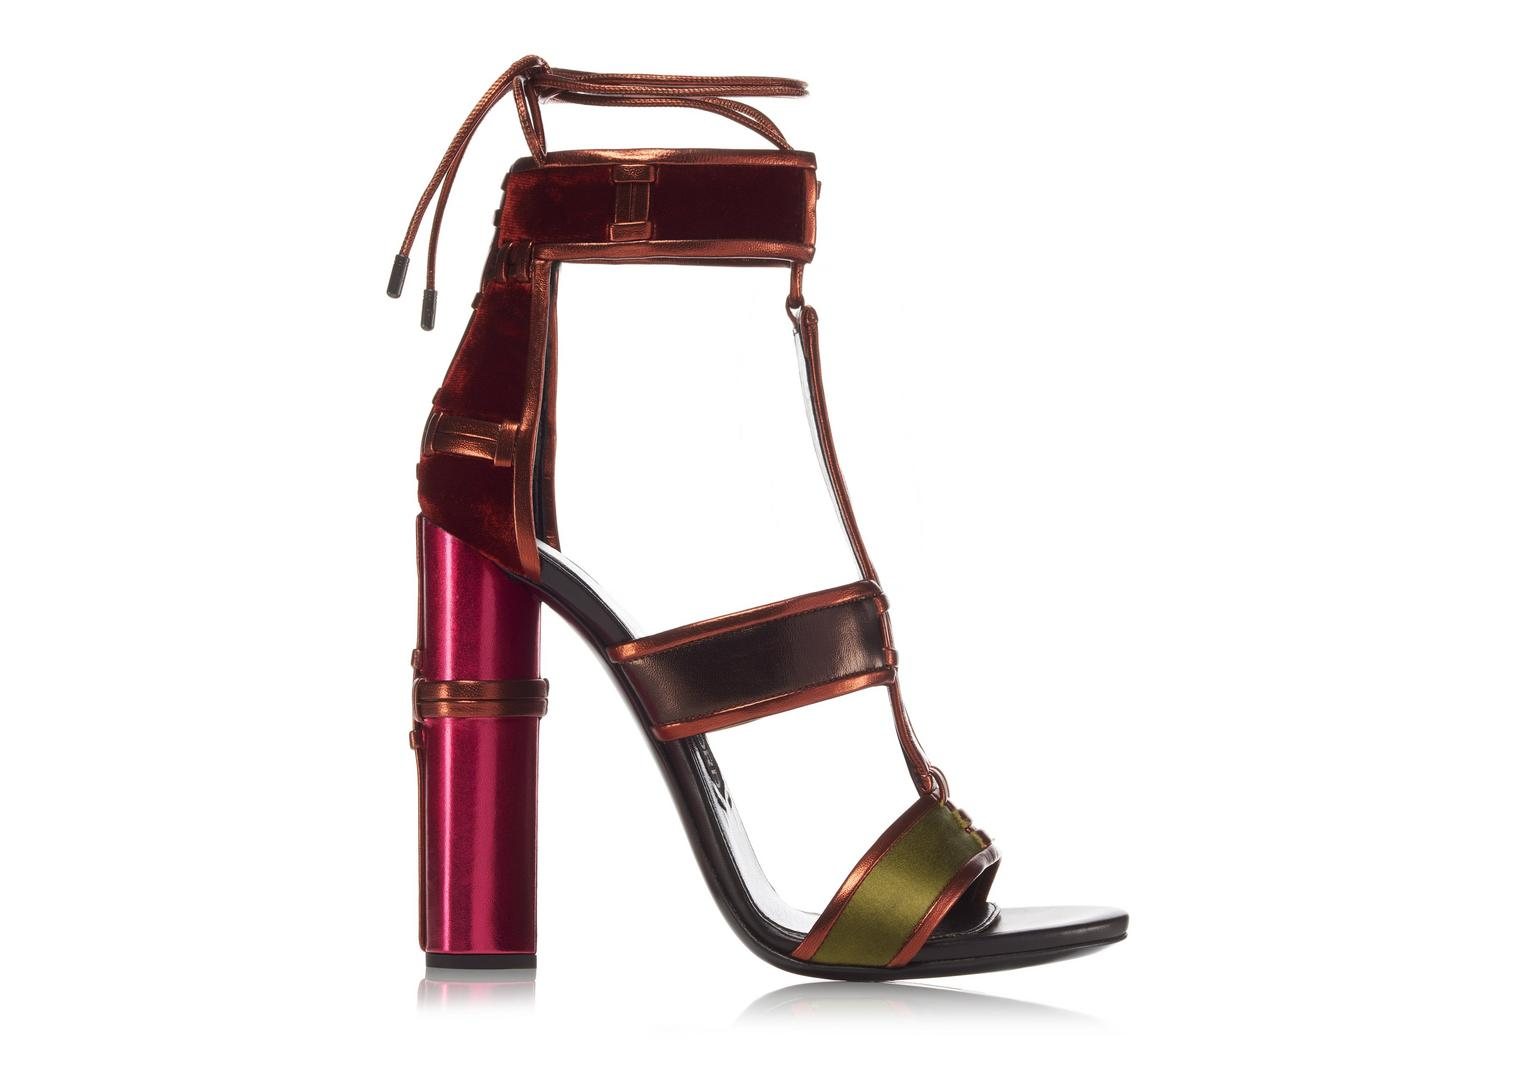 TOM FORD Patchwork Sandal